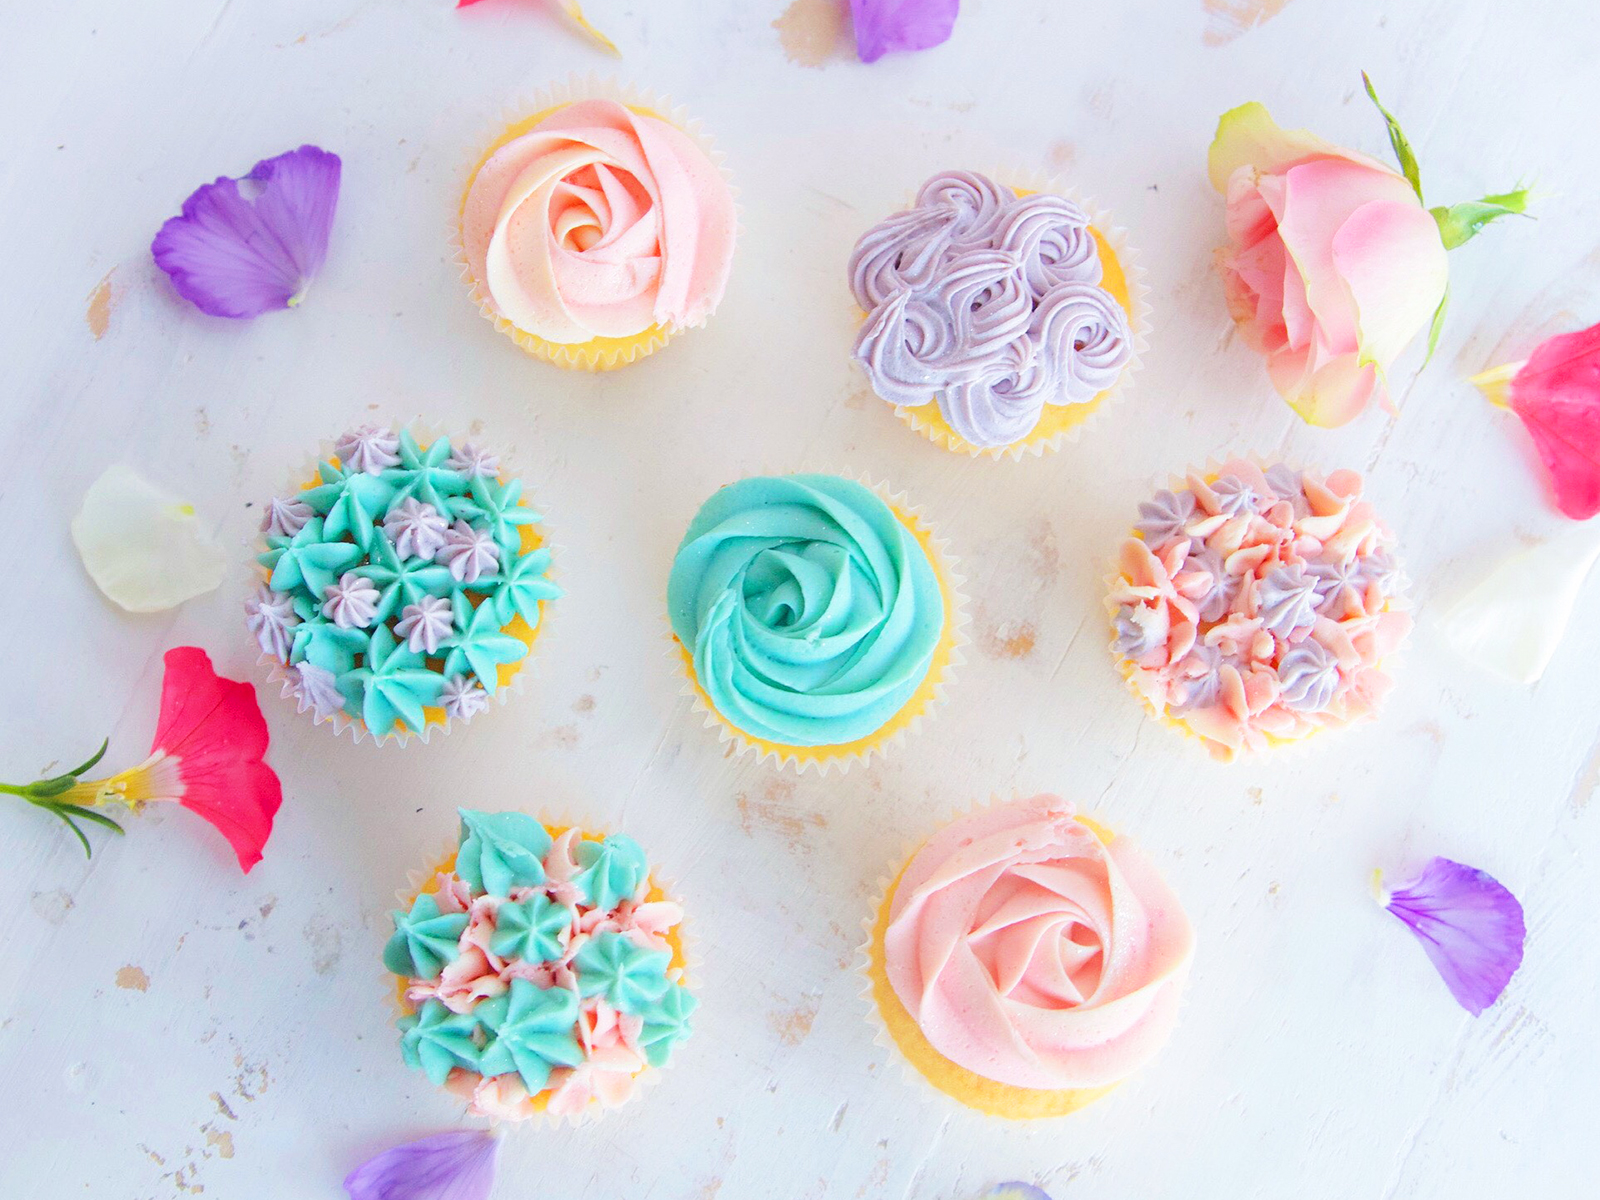 buttercream cake art header image